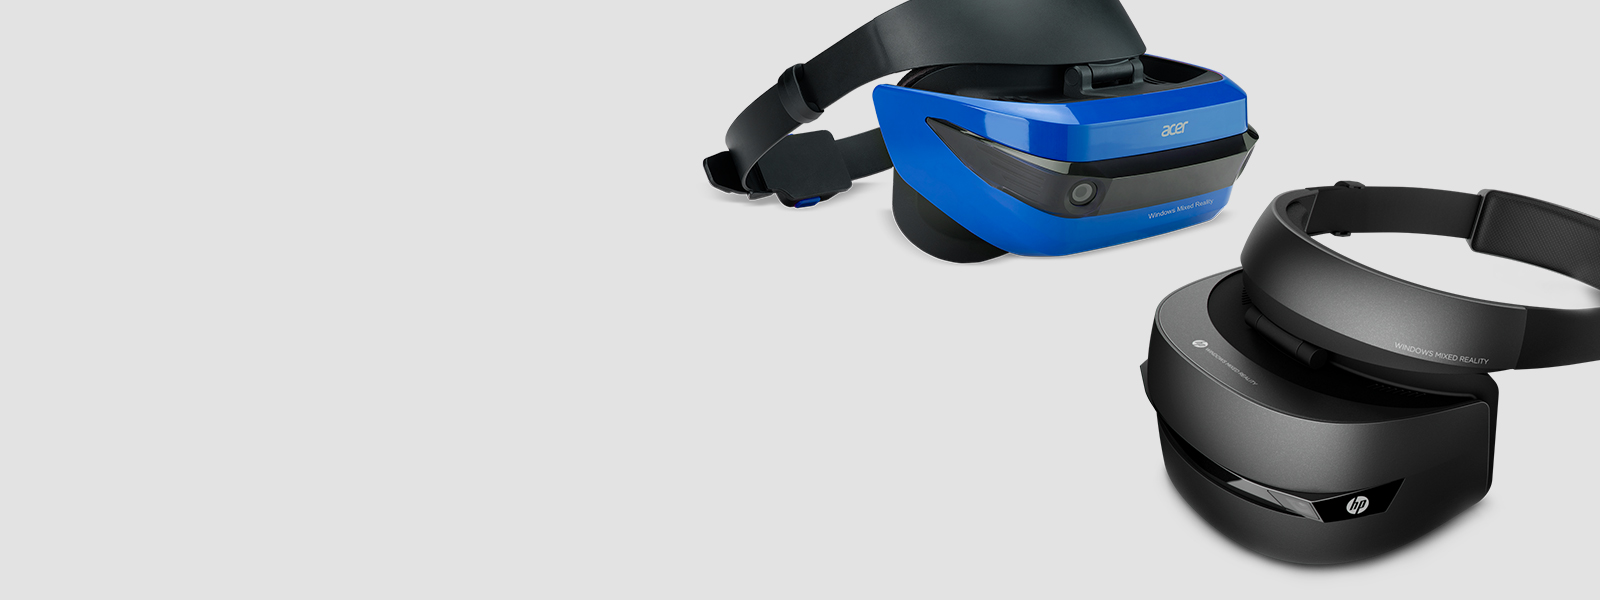 Acer Mixed Reality Headset facing right, HP Mix Reality Headset facing left